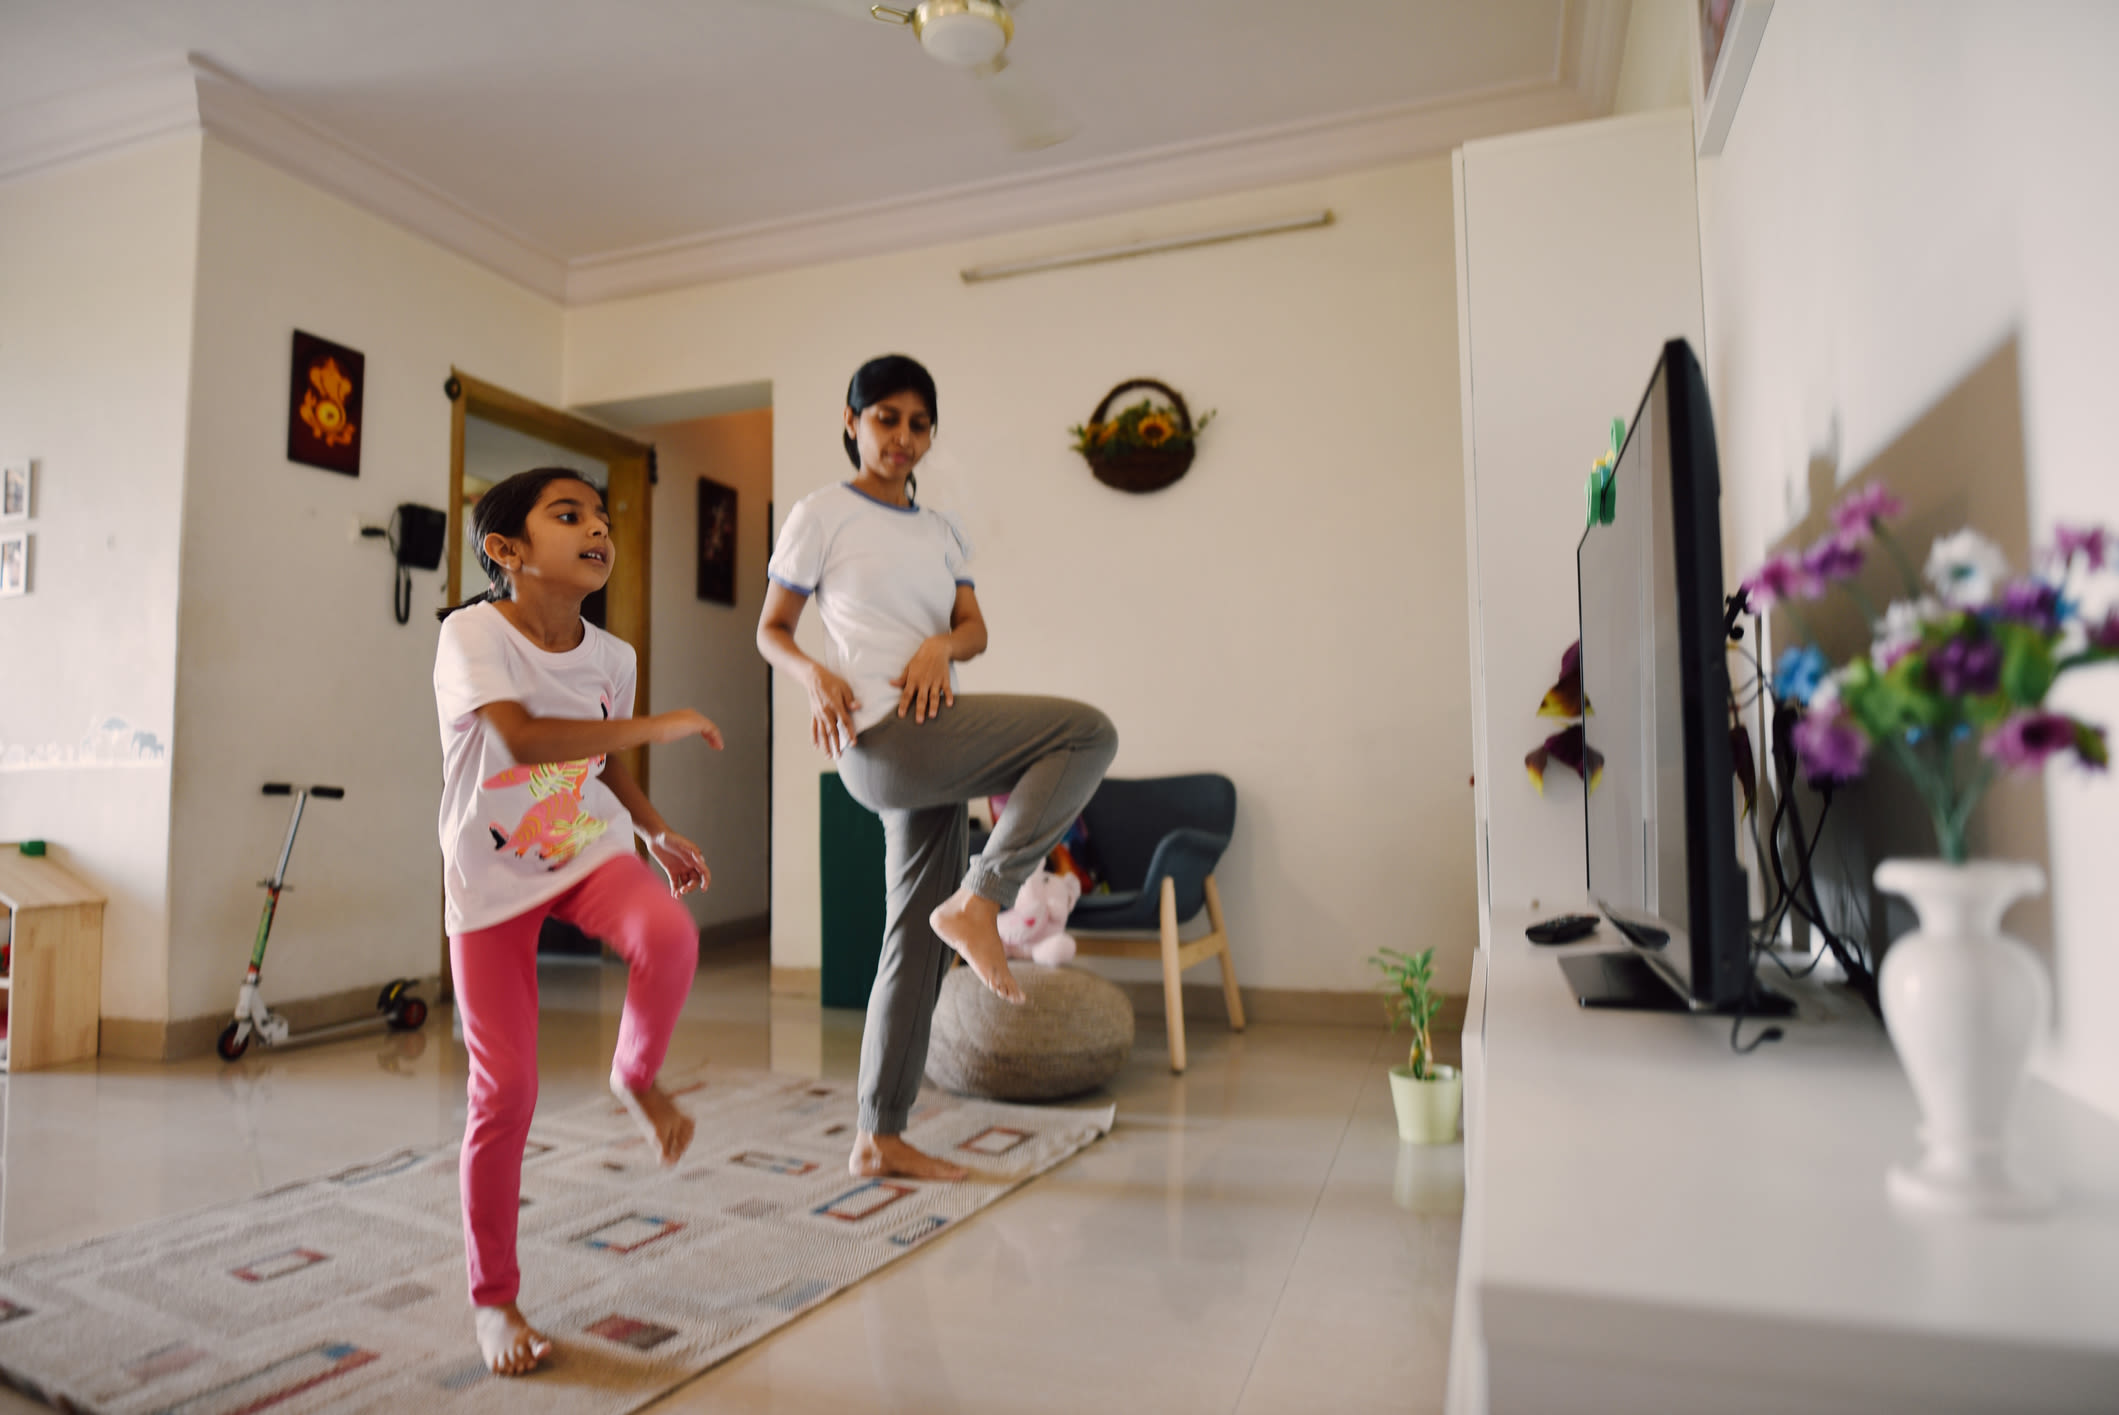 A mother and her daughter doing exercise at home